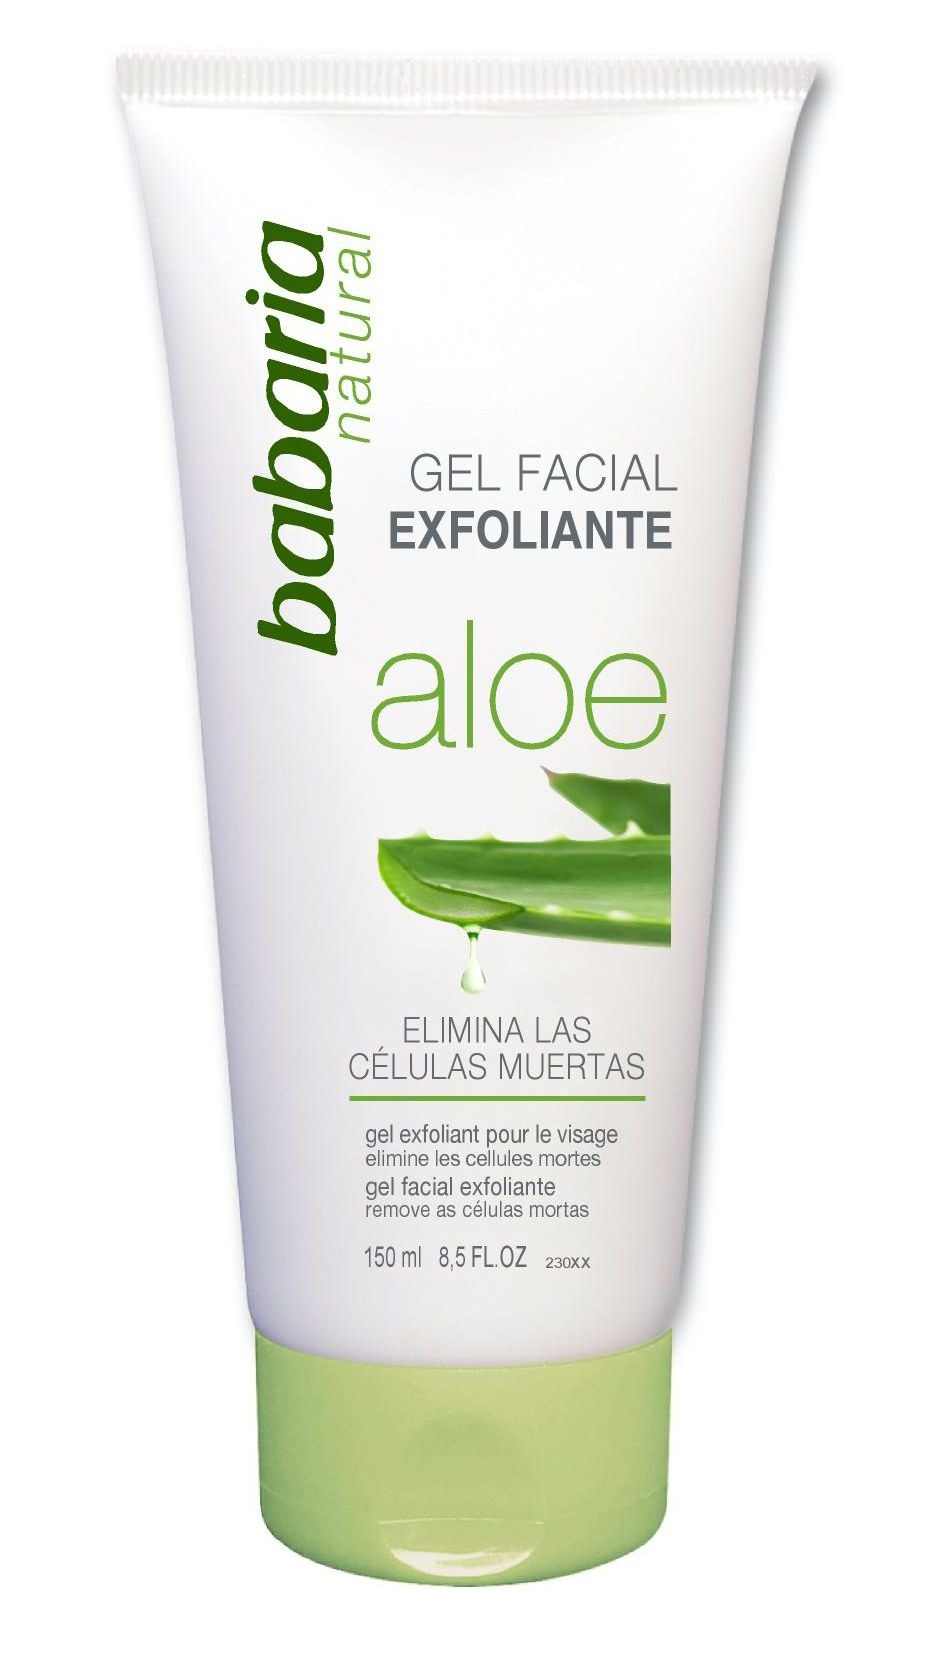 This scrub also works with Aloe Gel